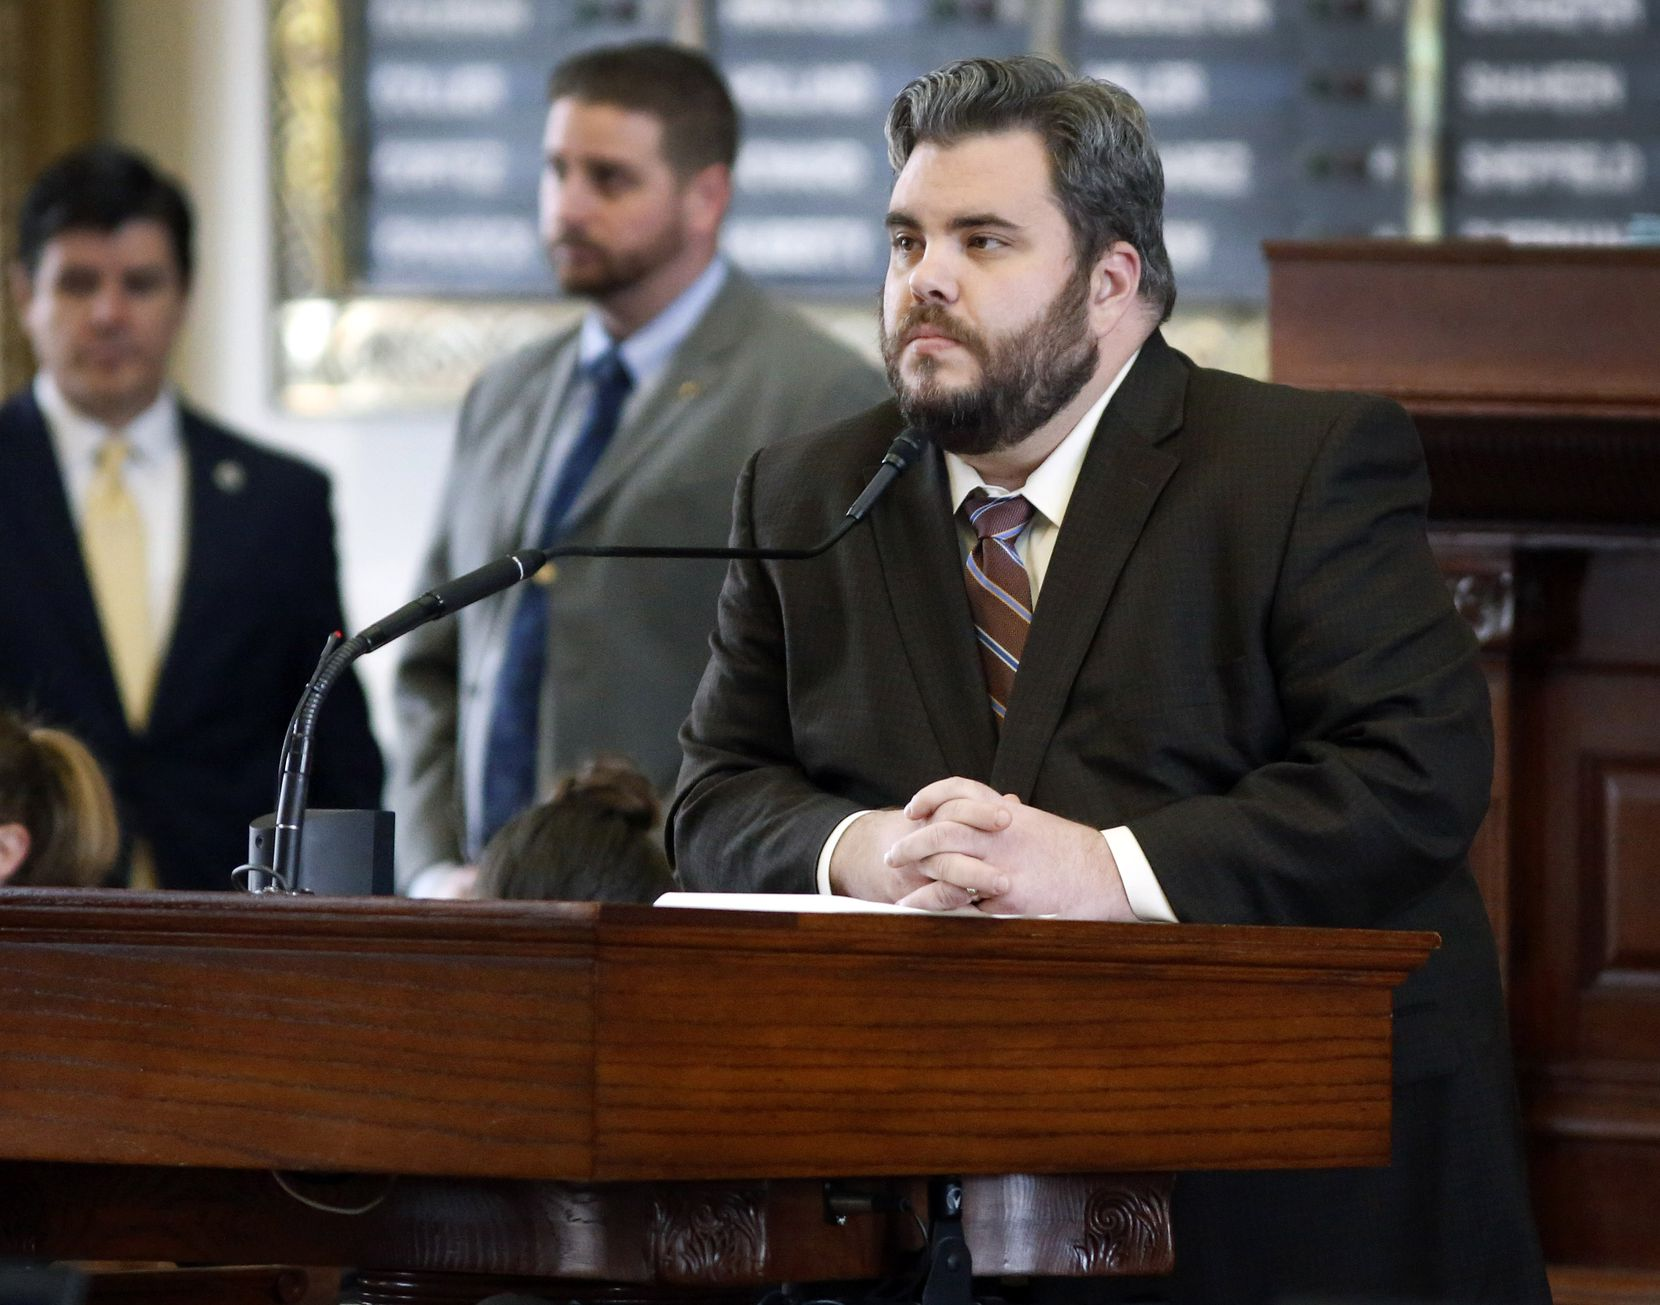 Rep. Jonathan Stickland, R-Bedford, listened to a colleague speak about a bill Wednesday at the Capitol in Austin. (Tom Fox/The Dallas Morning News)